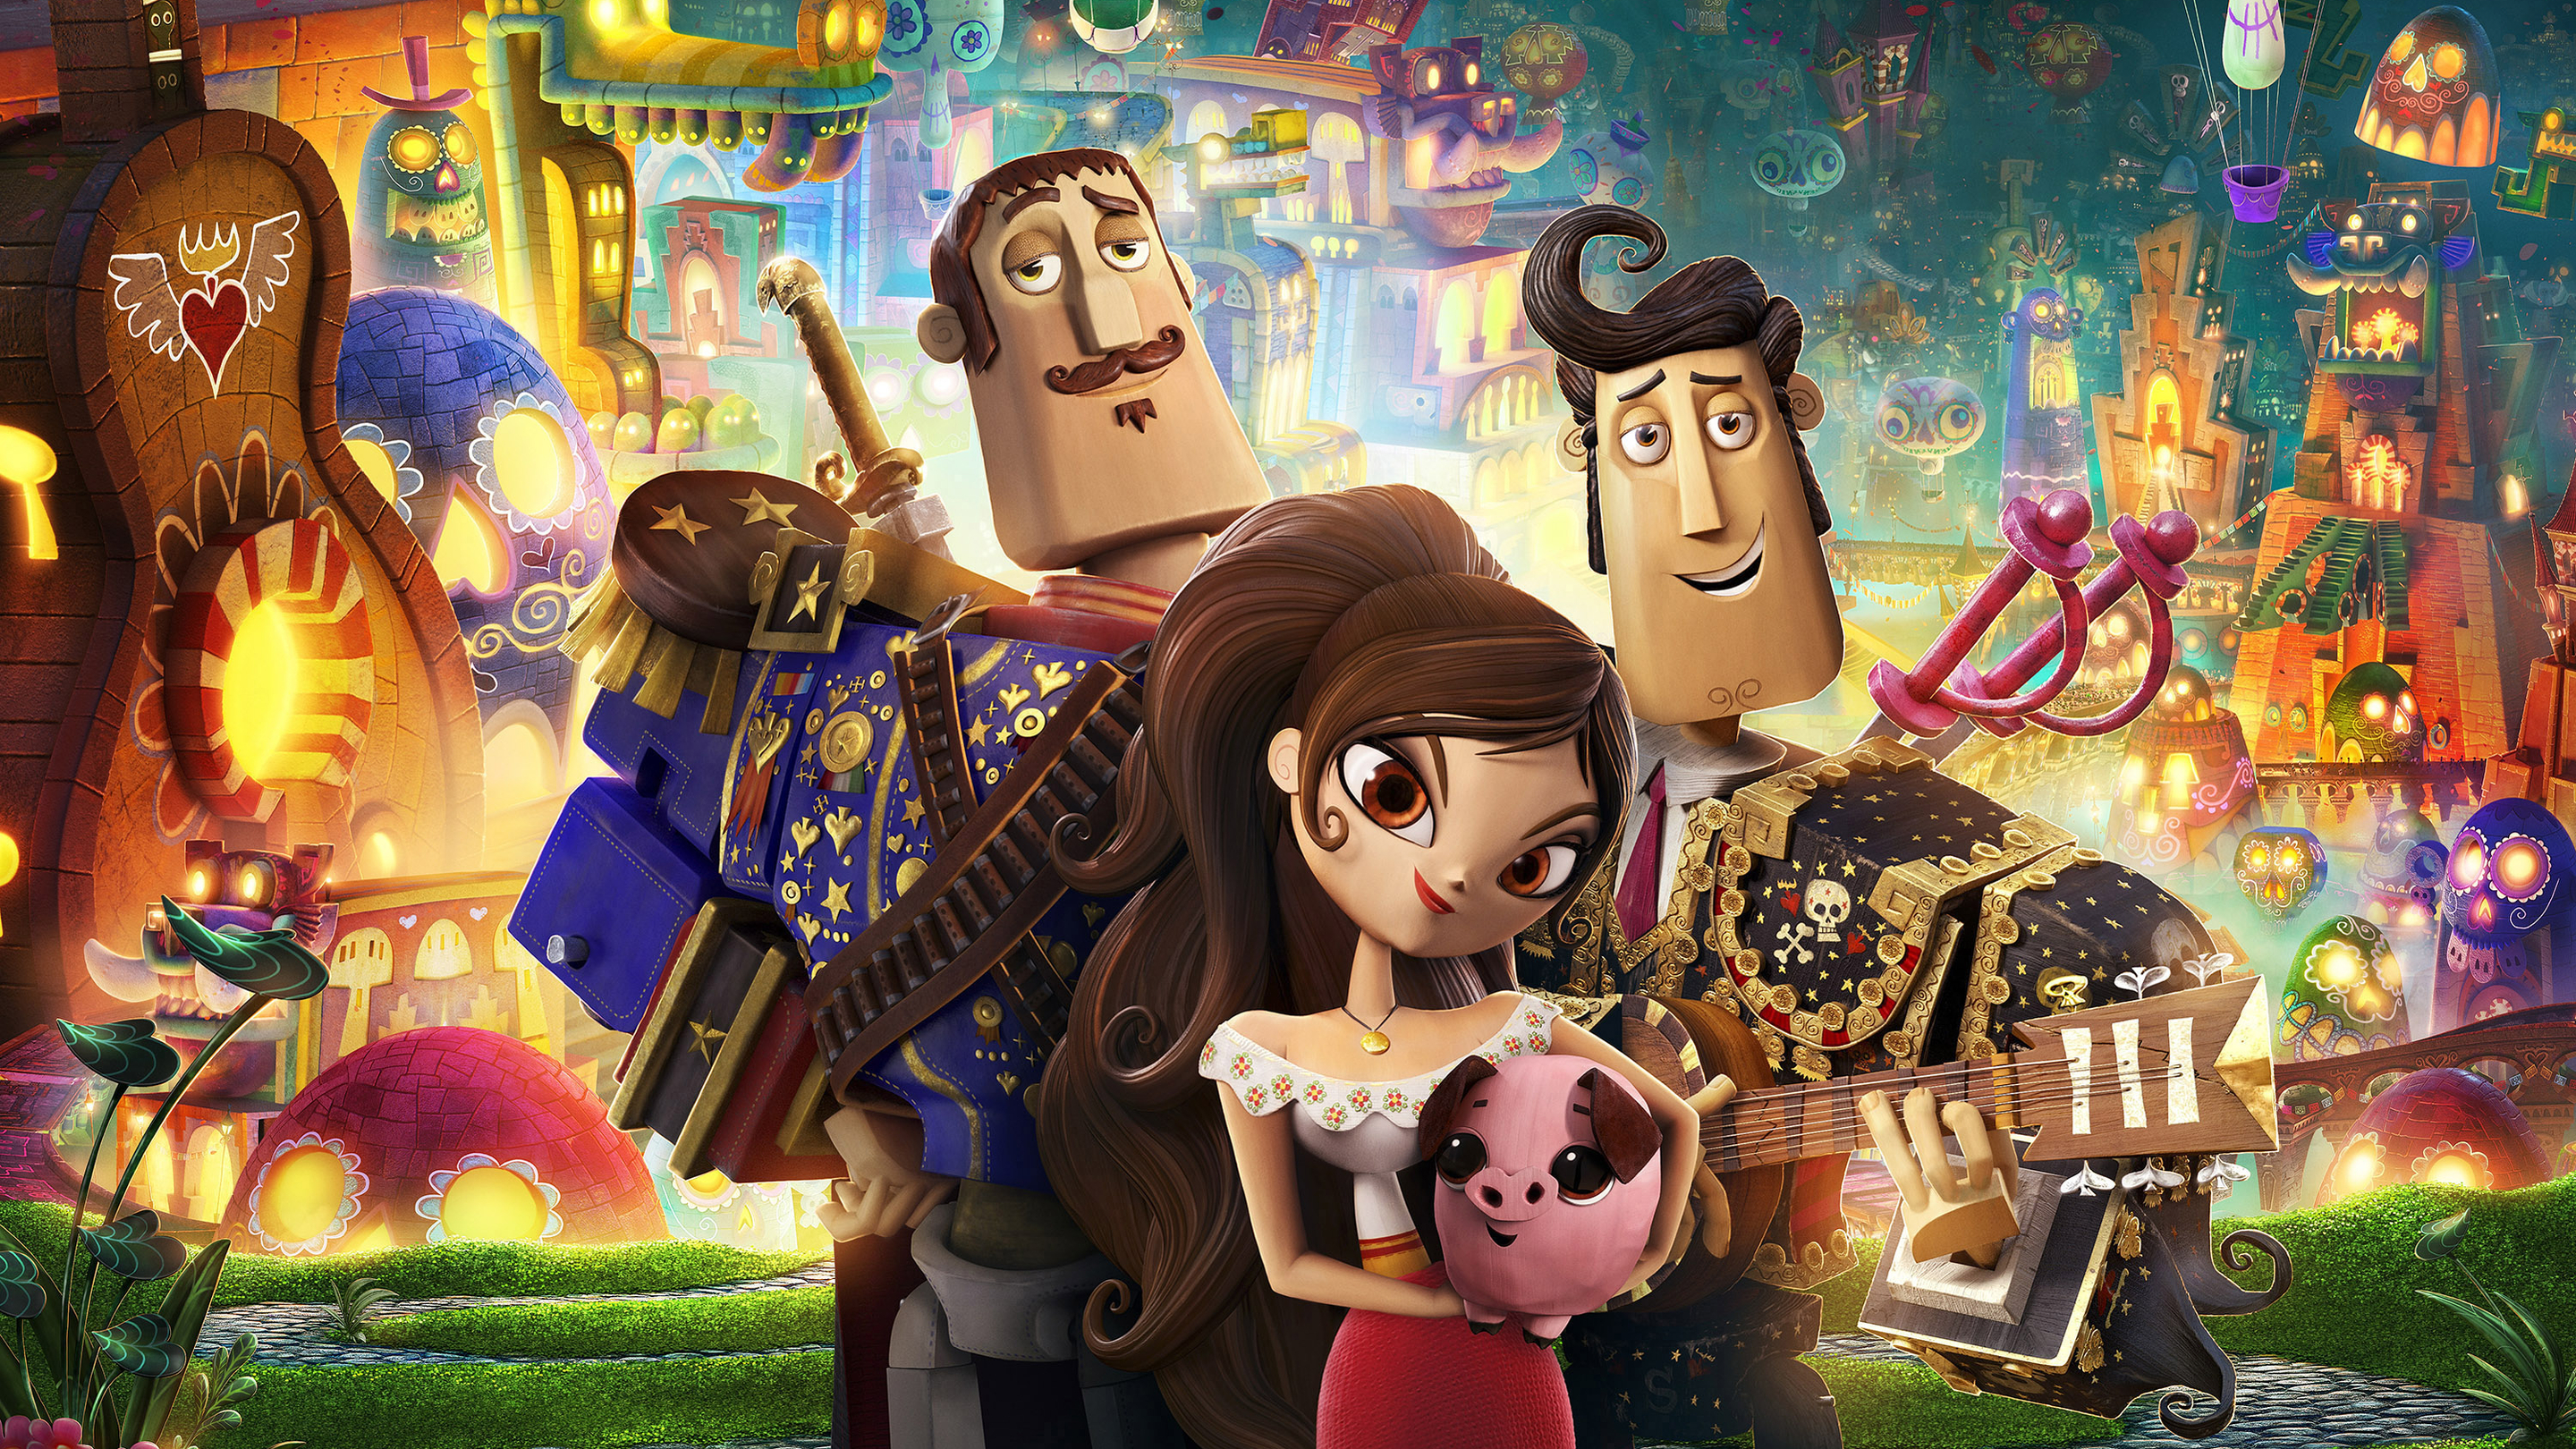 The Book Of Life Hd Wallpaper Background Image 2880x1620 Id